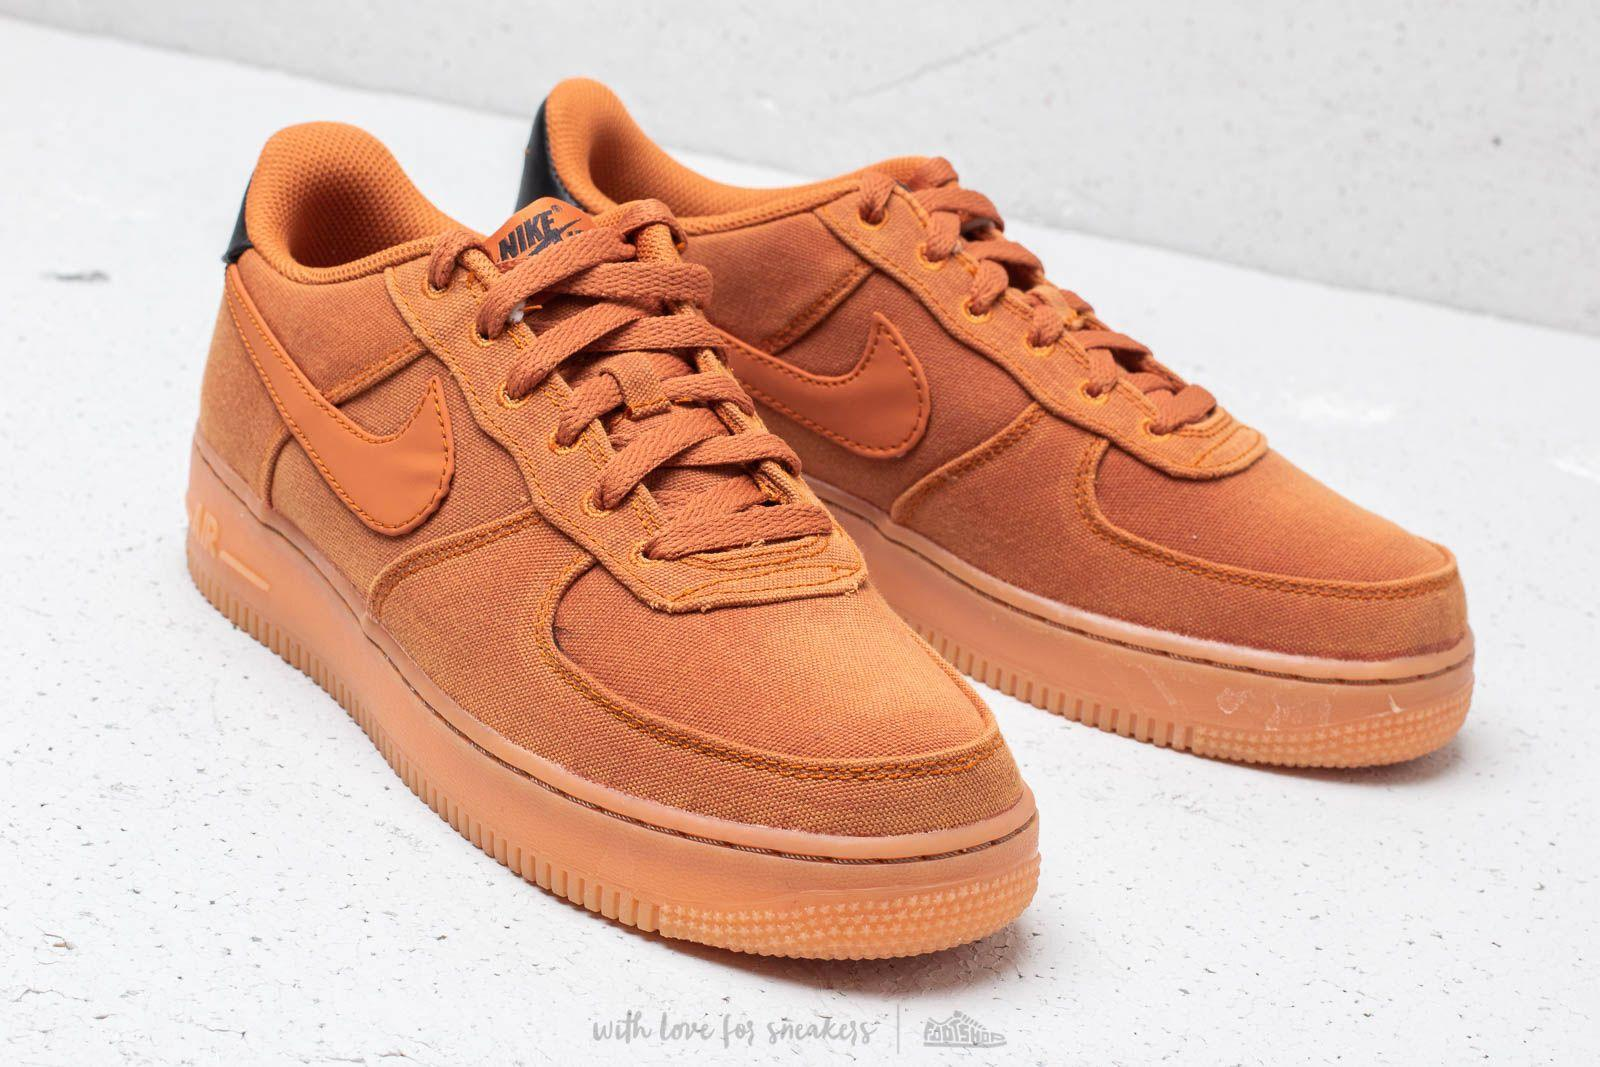 on sale b2fda 4e3b6 Nike Air Force 1  07 Lv8 Style Monarch  Monarch-gum Med Brown in ...